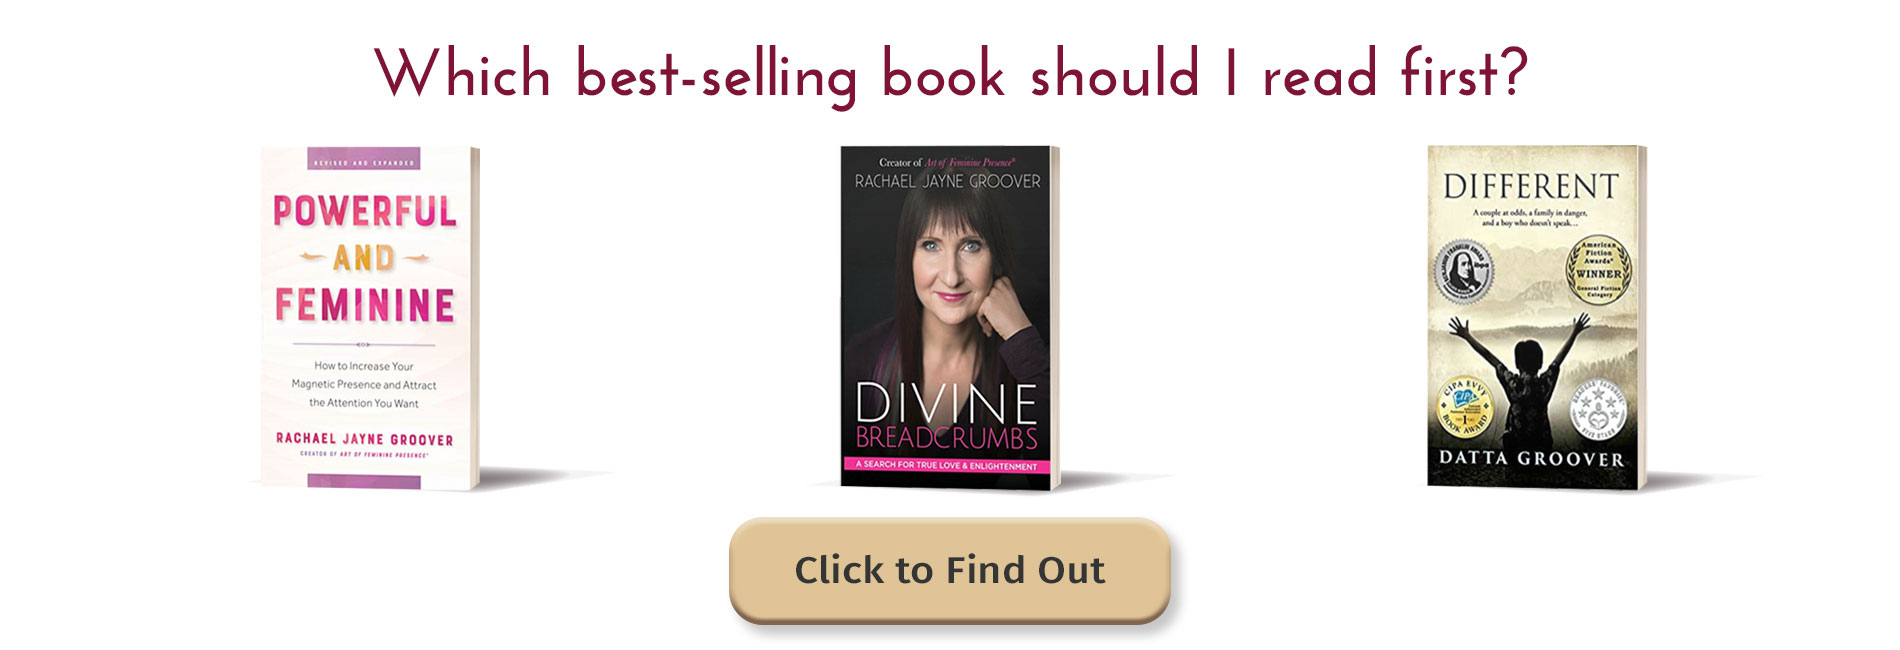 Graphic with books of best-selling books from Rachael Jayne Groover and Datta Groover